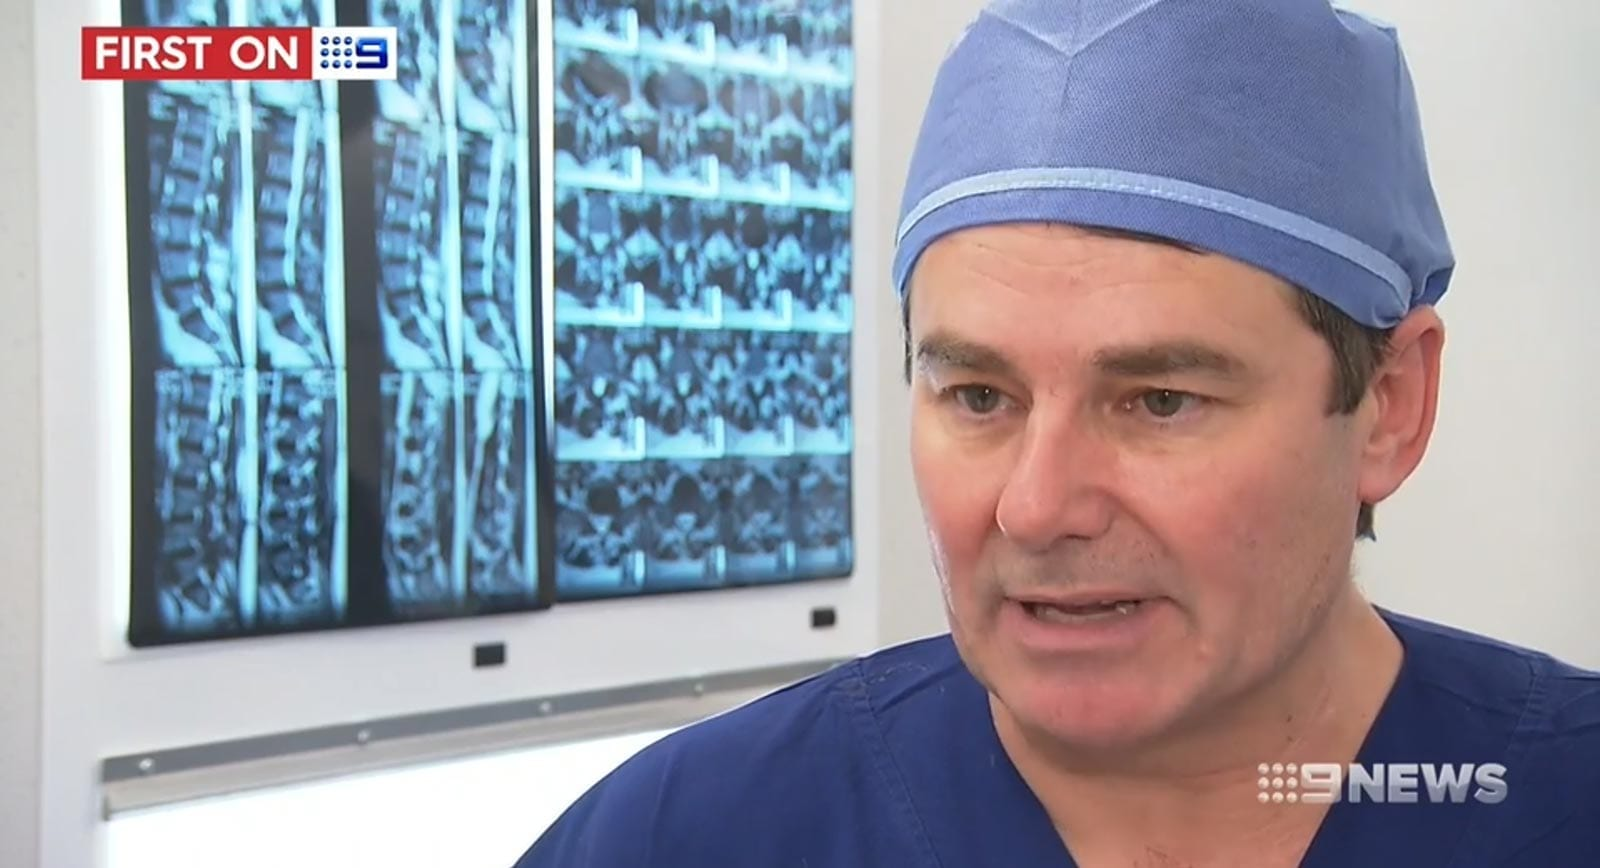 New scanning technology to 'revolutionise' back surgery